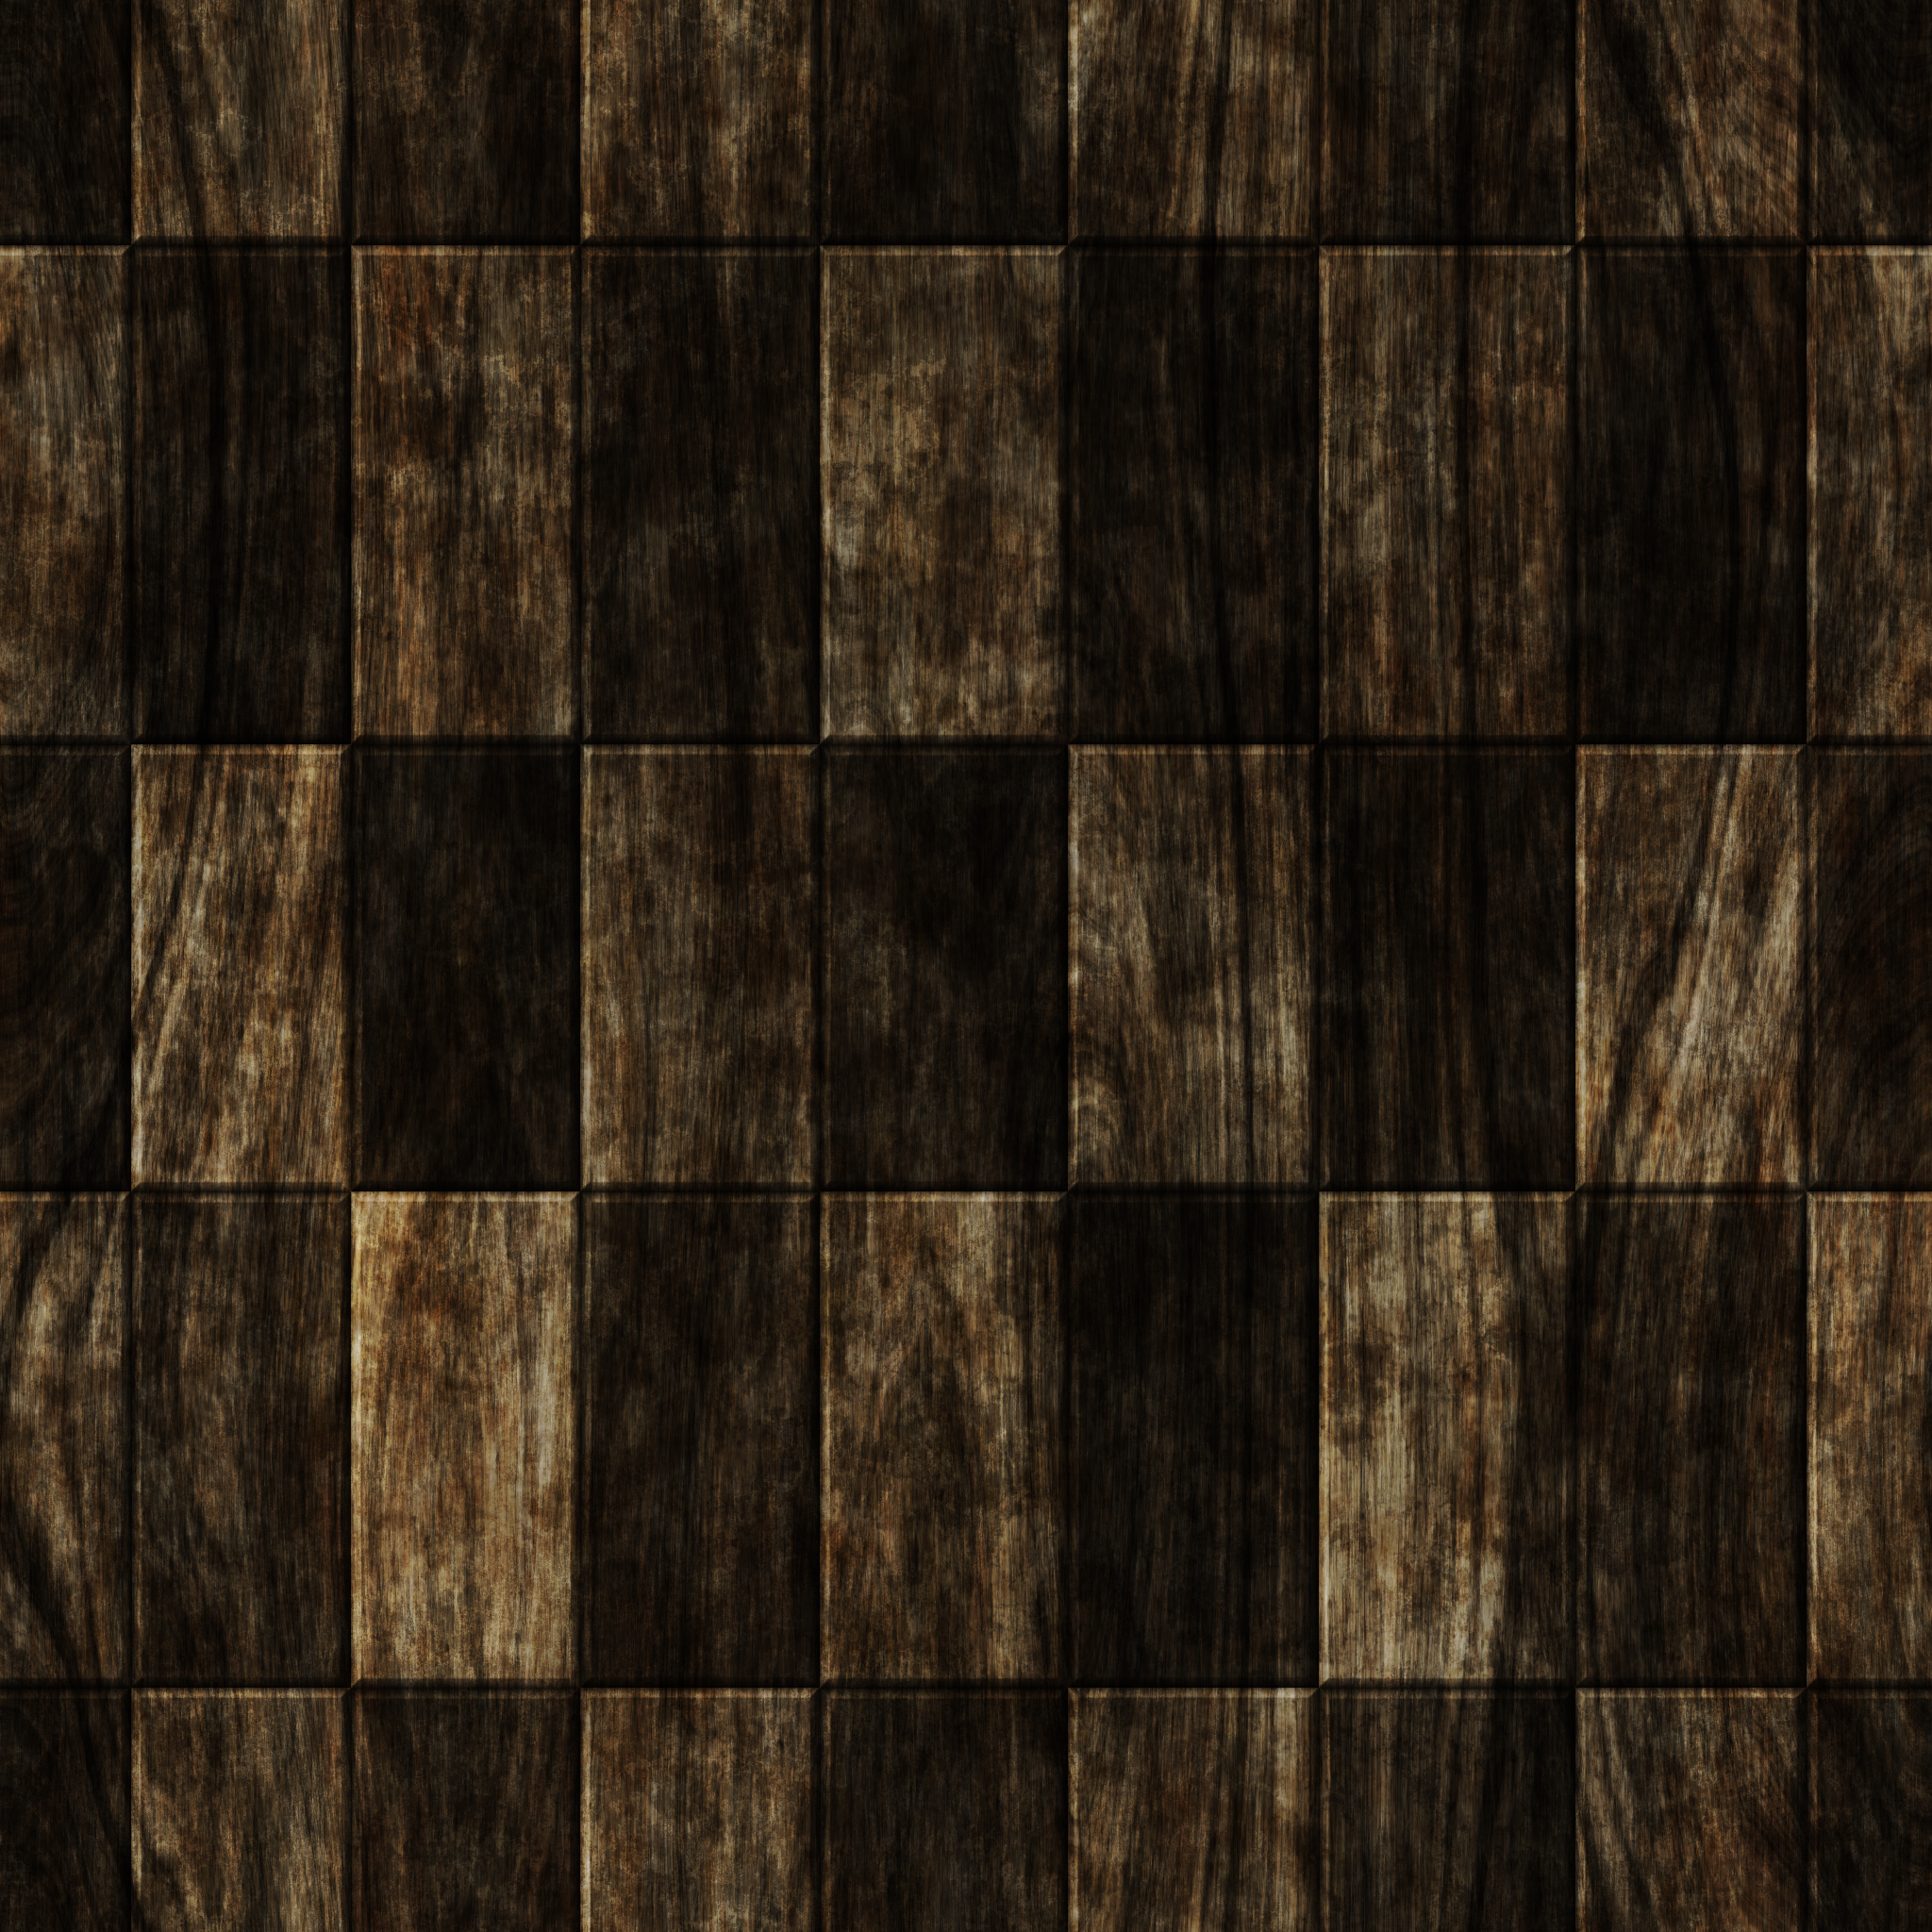 Wooden Wall 10 by Hoover1979